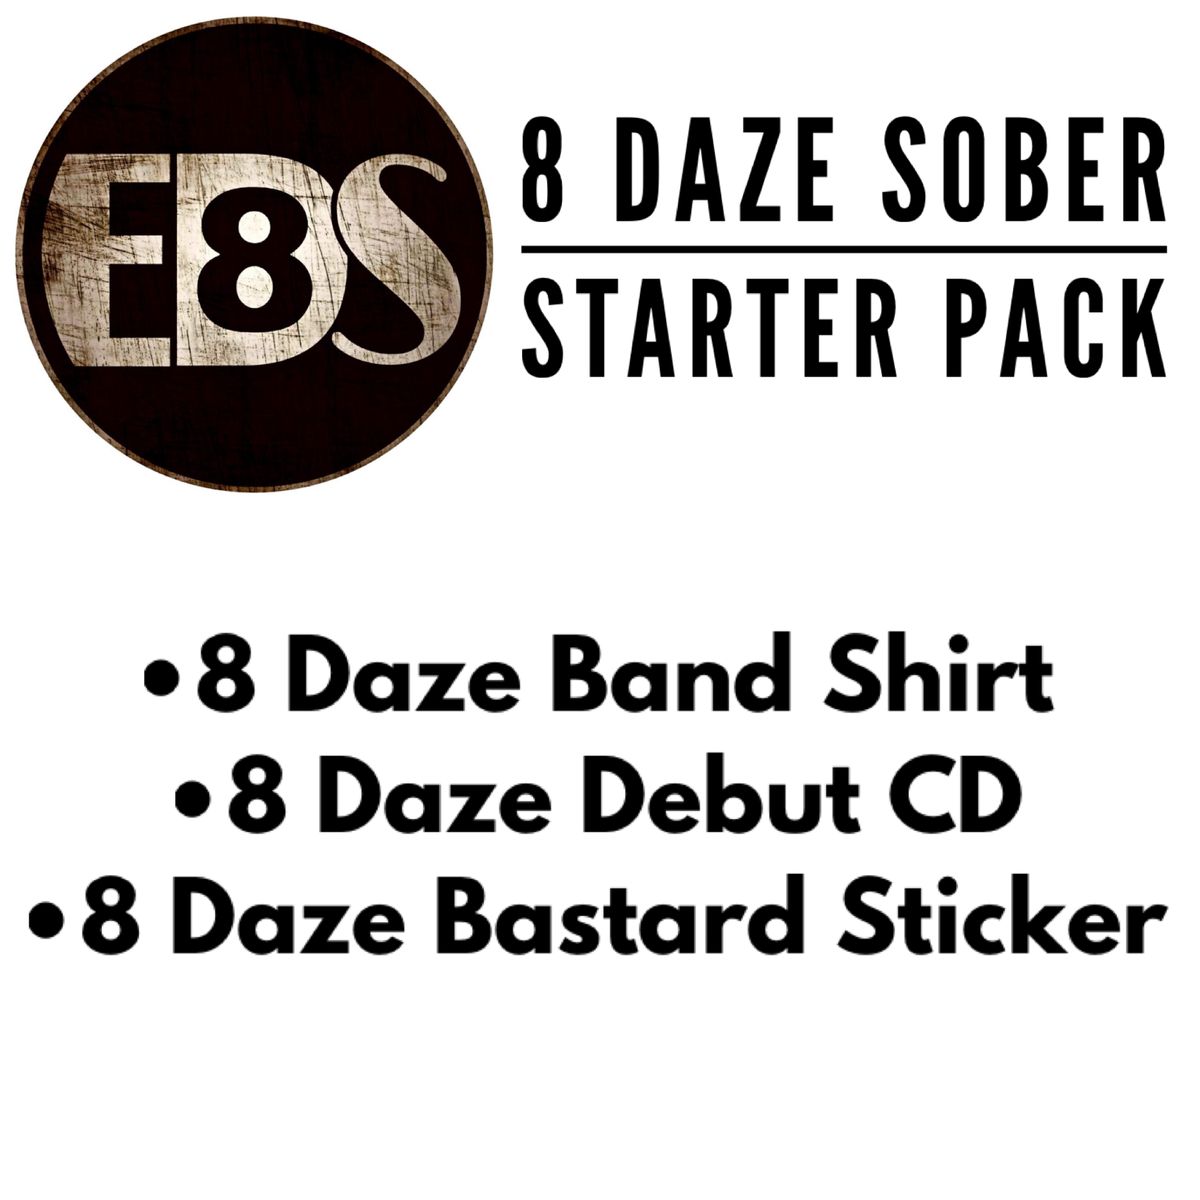 Image of 8 Daze Sober Starter Pack